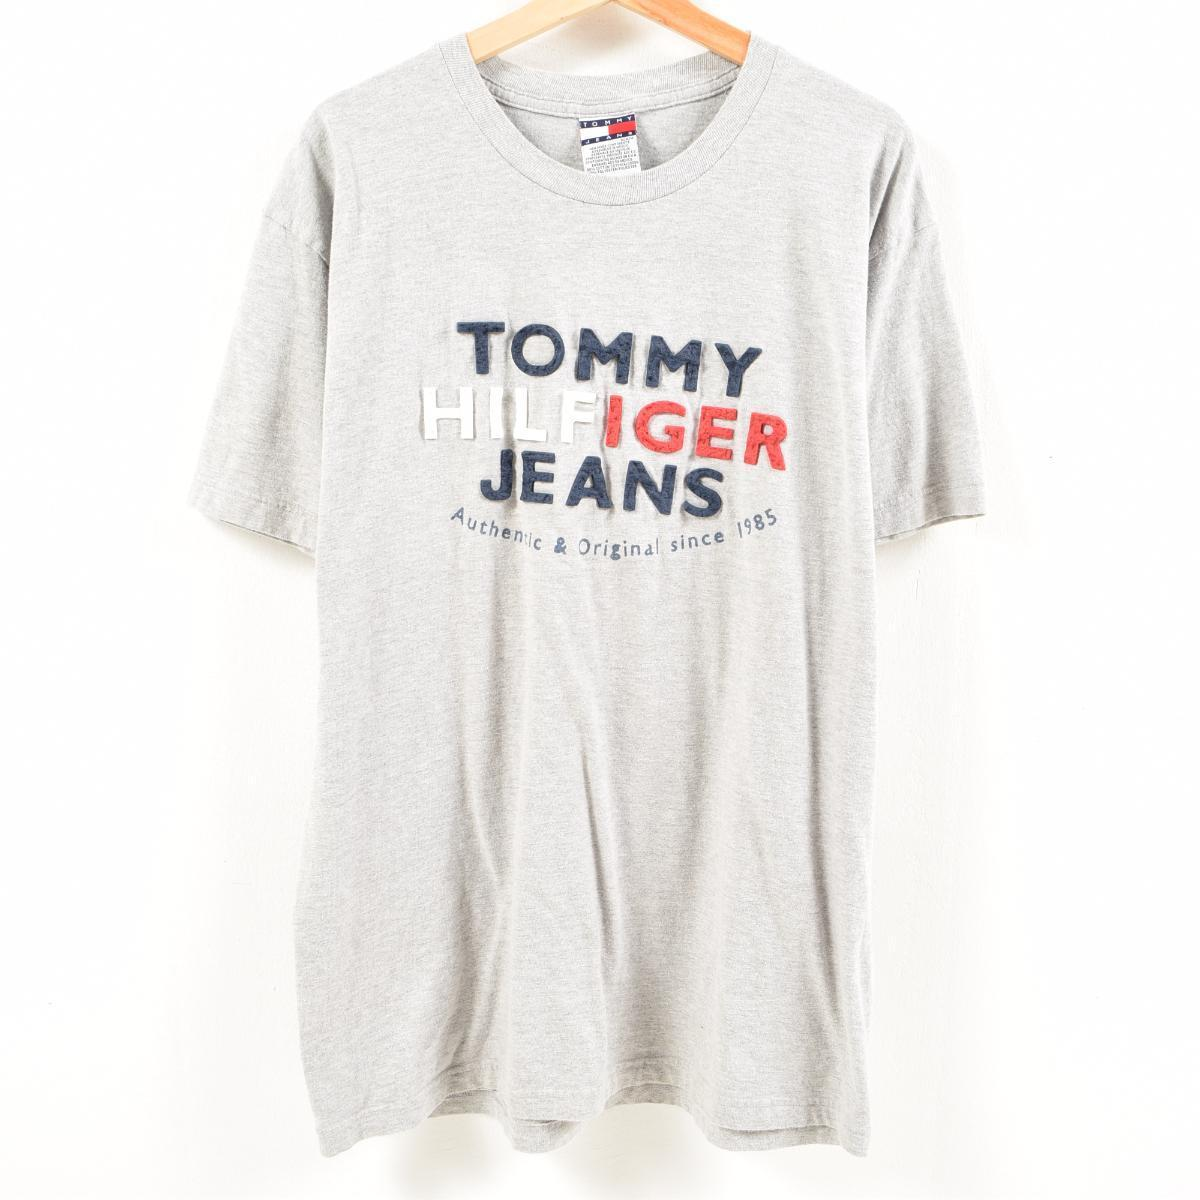 39dacb099 90s トミーヒルフィガー TOMMY HILFIGER JEANS logo T-shirt men XL /was7380 ...